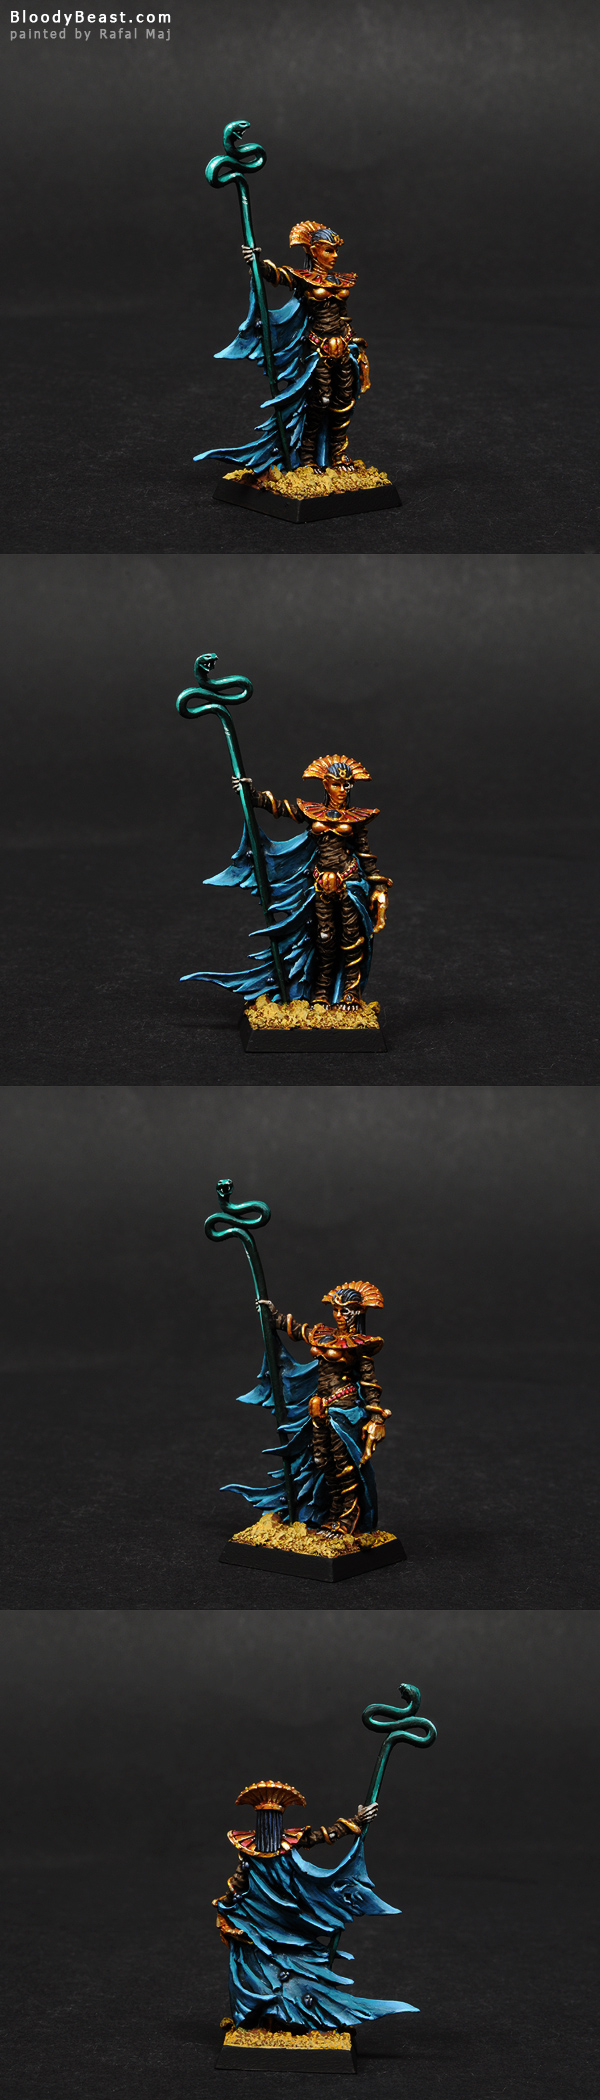 Tomb Kings Queen Khalida painted by Rafal Maj (BloodyBeast.com)